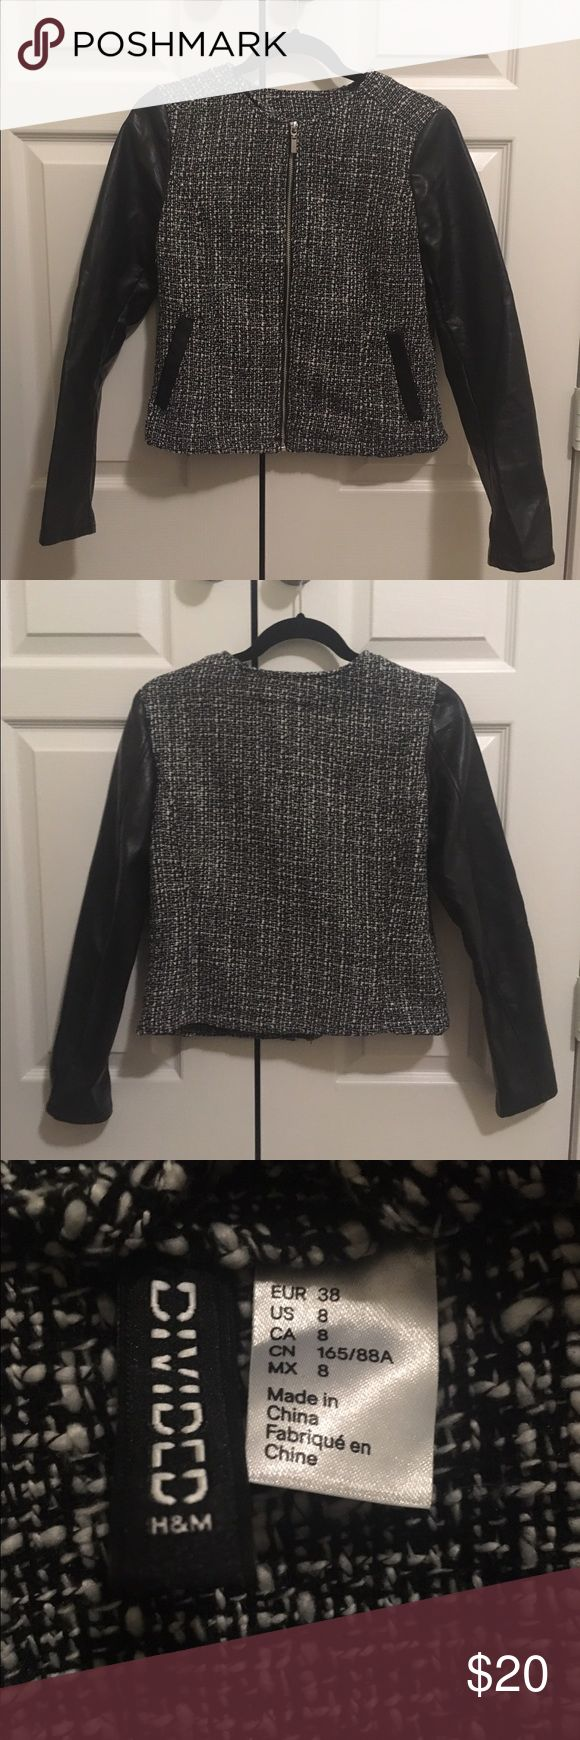 Pleather Sleeve Jacket This is an amazing jacket to make any casual outfit a bit more formal... but not too formal! This jacket is definitely something that someone would want to wear to go out for a nice dinner and drinks with your girls! Divided Jackets & Coats